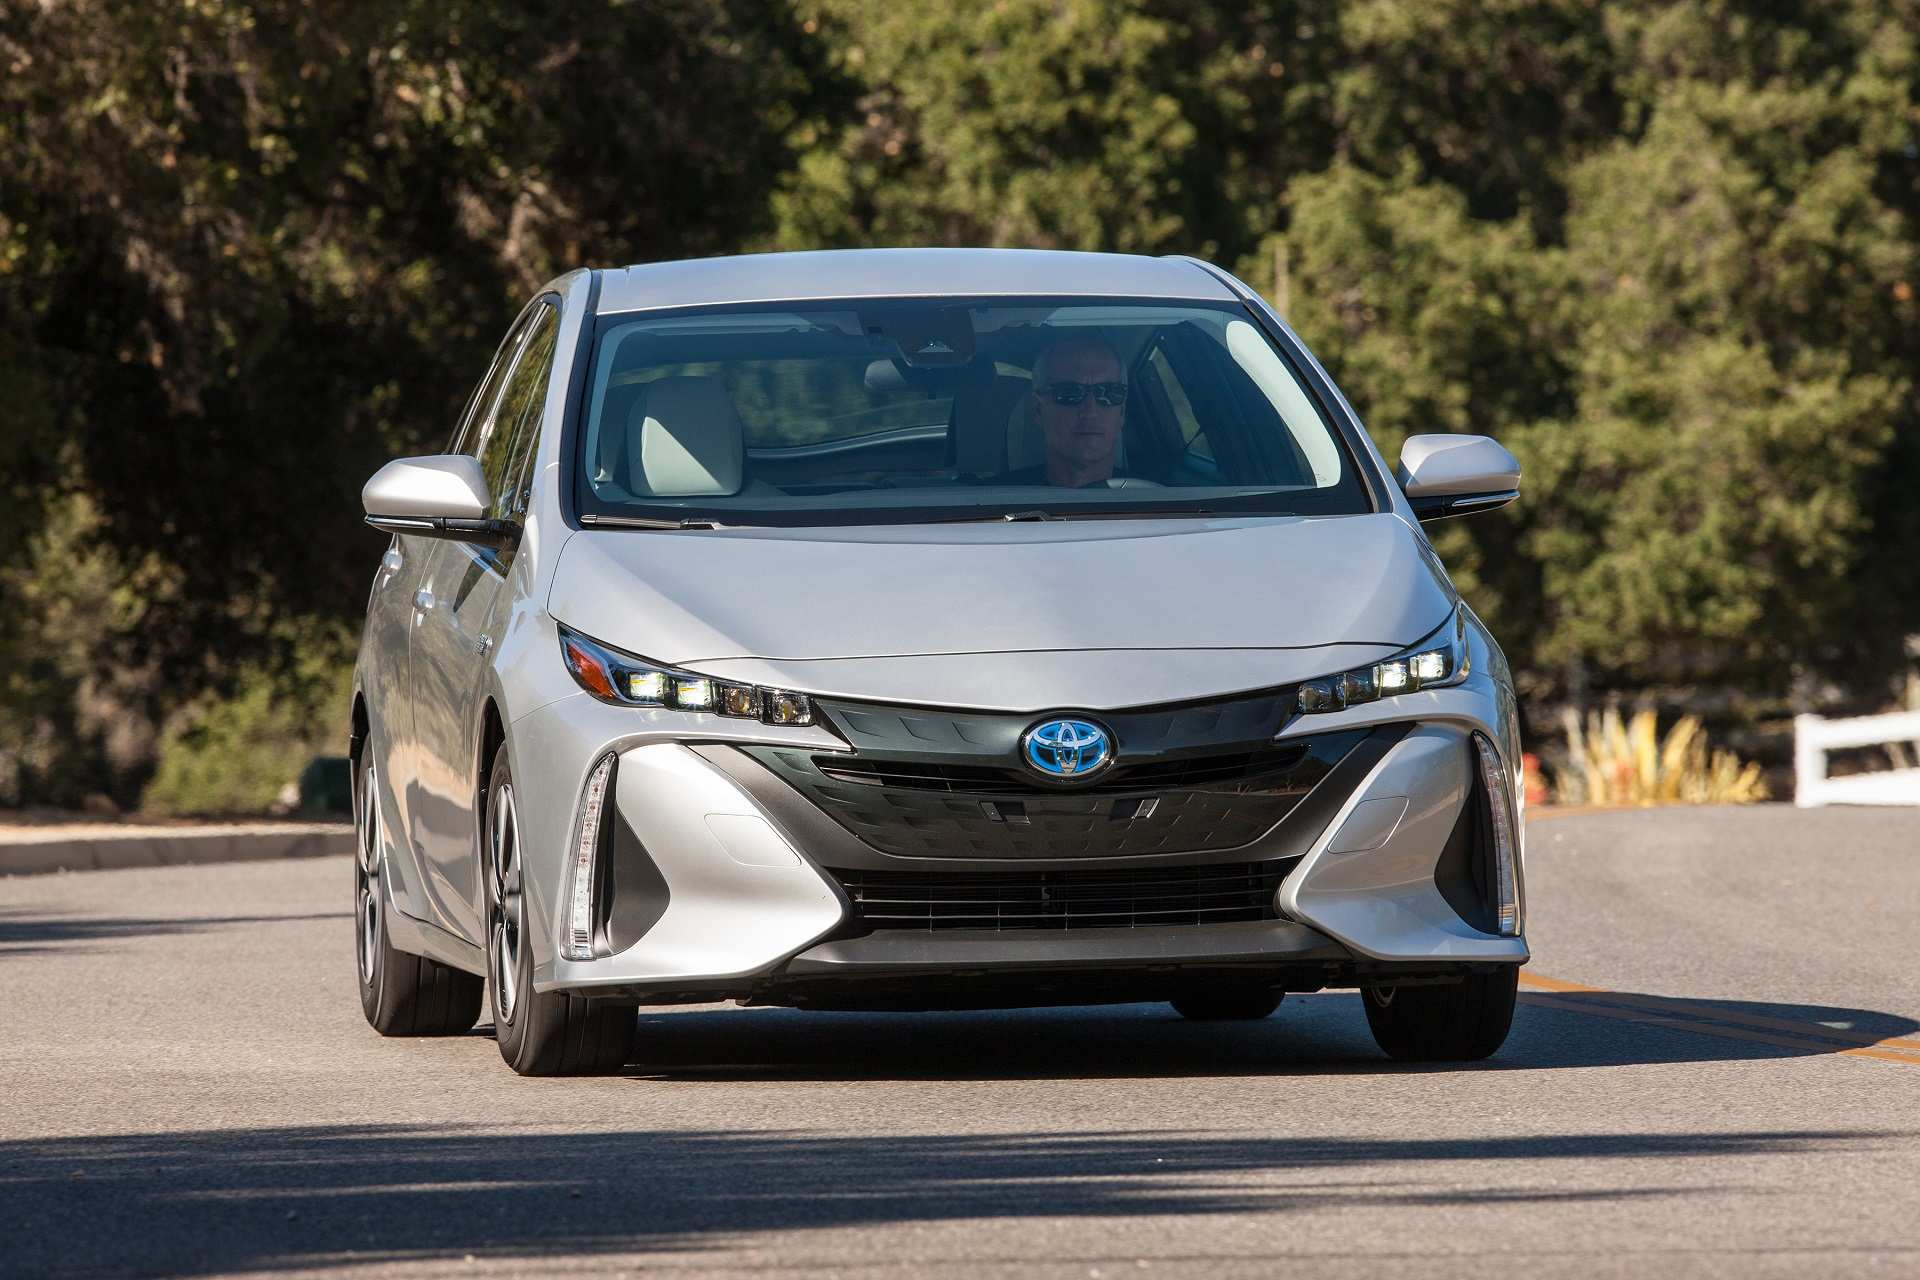 38 New Toyota Electric Car 2020 Research New